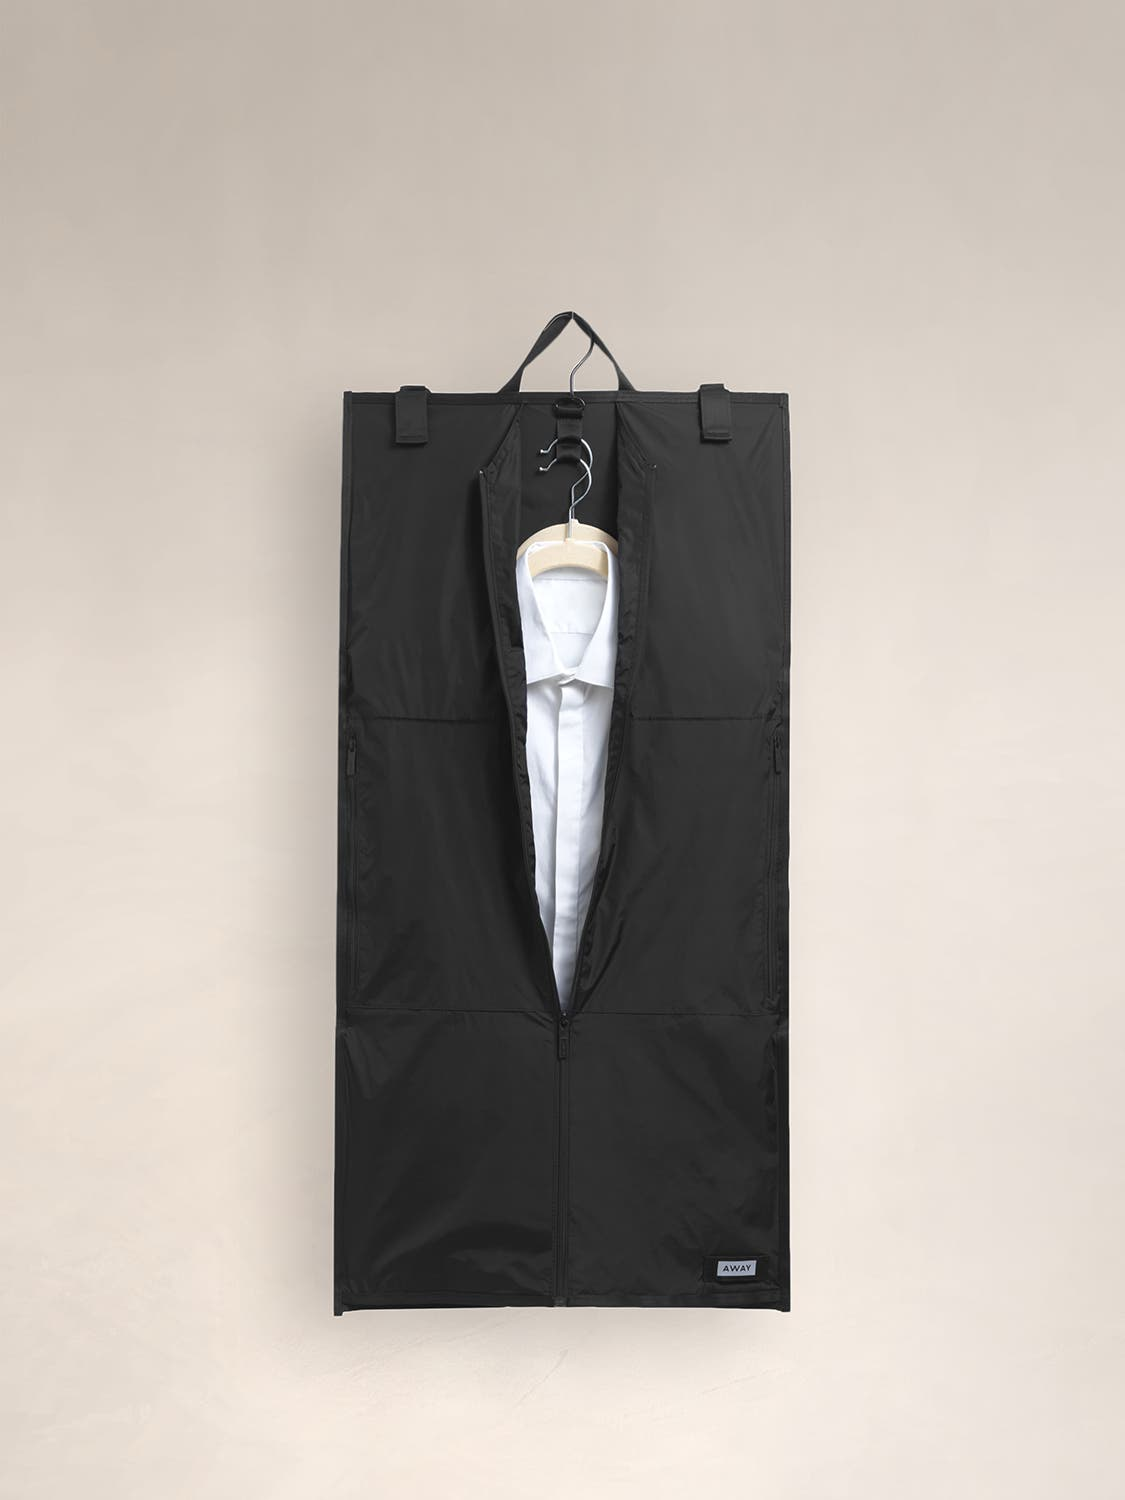 A black garment sleeve with a handle for hanging and a white shirt inside.